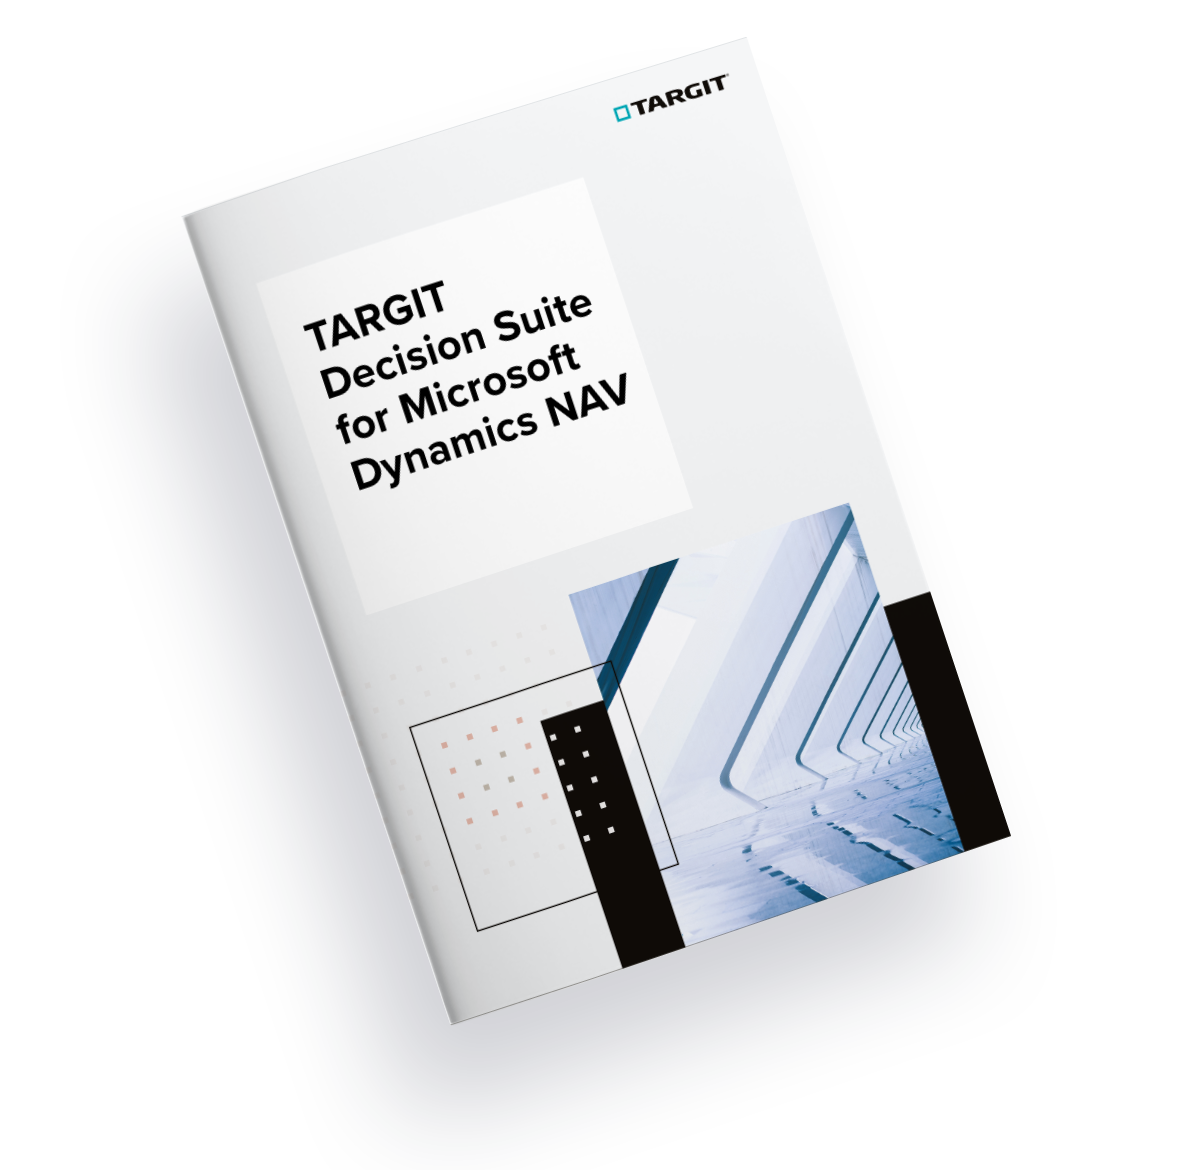 TARGIT Decision Suite for Microsoft Dynamics NAV